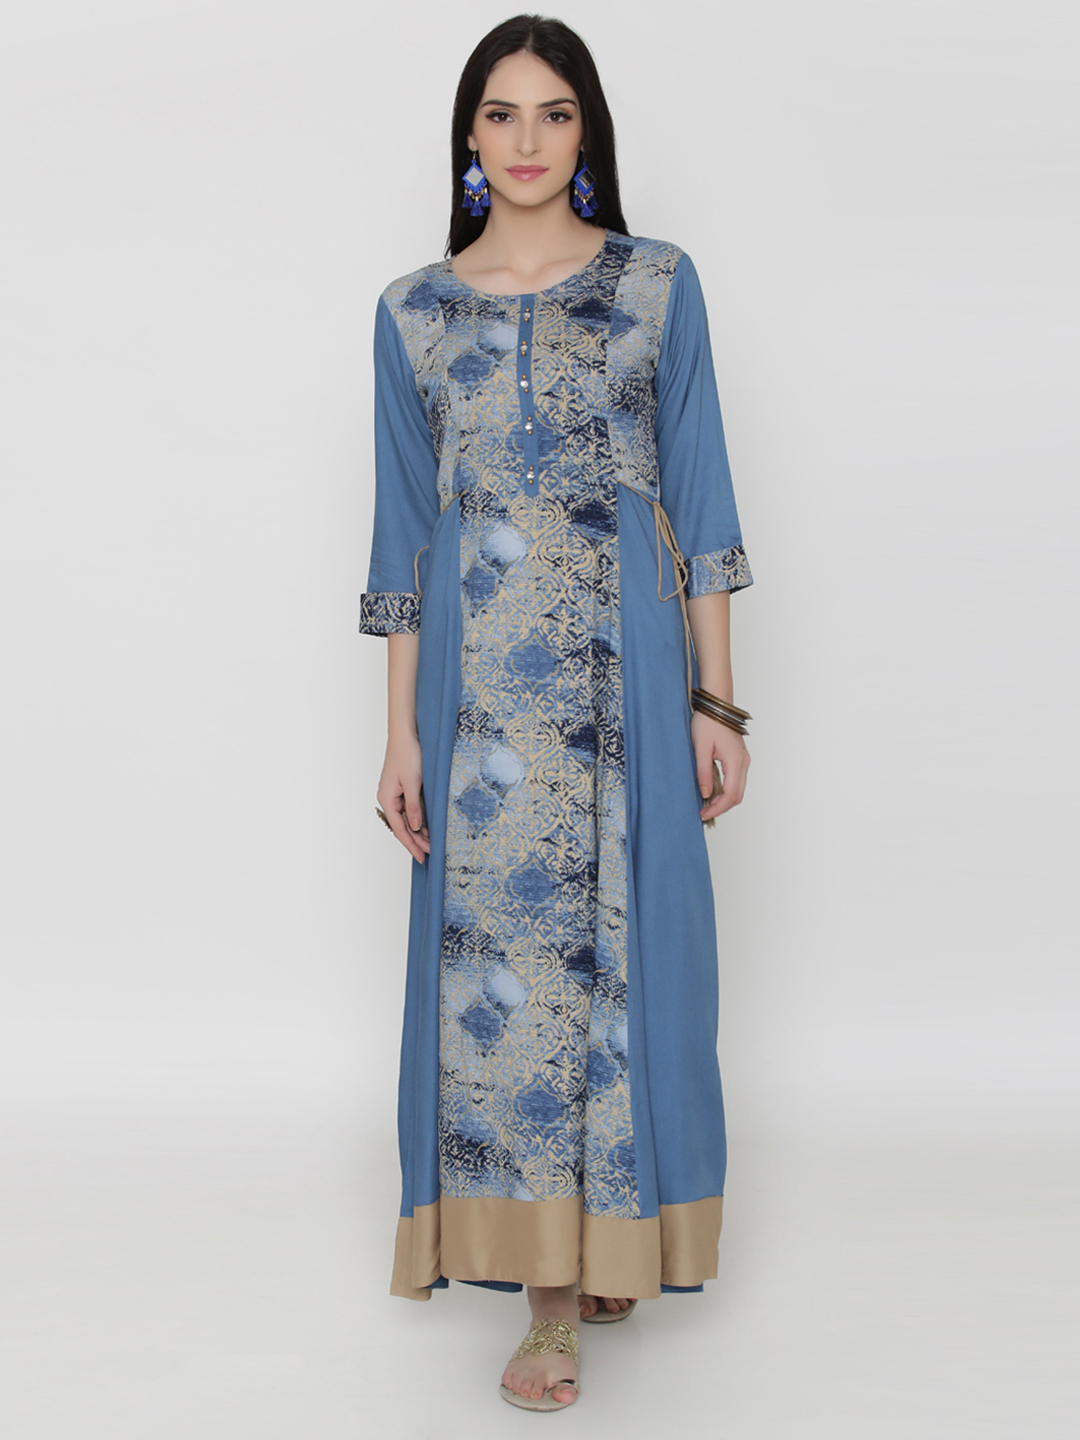 Shree Women Blue & Beige Printed Maxi Dress Price in India